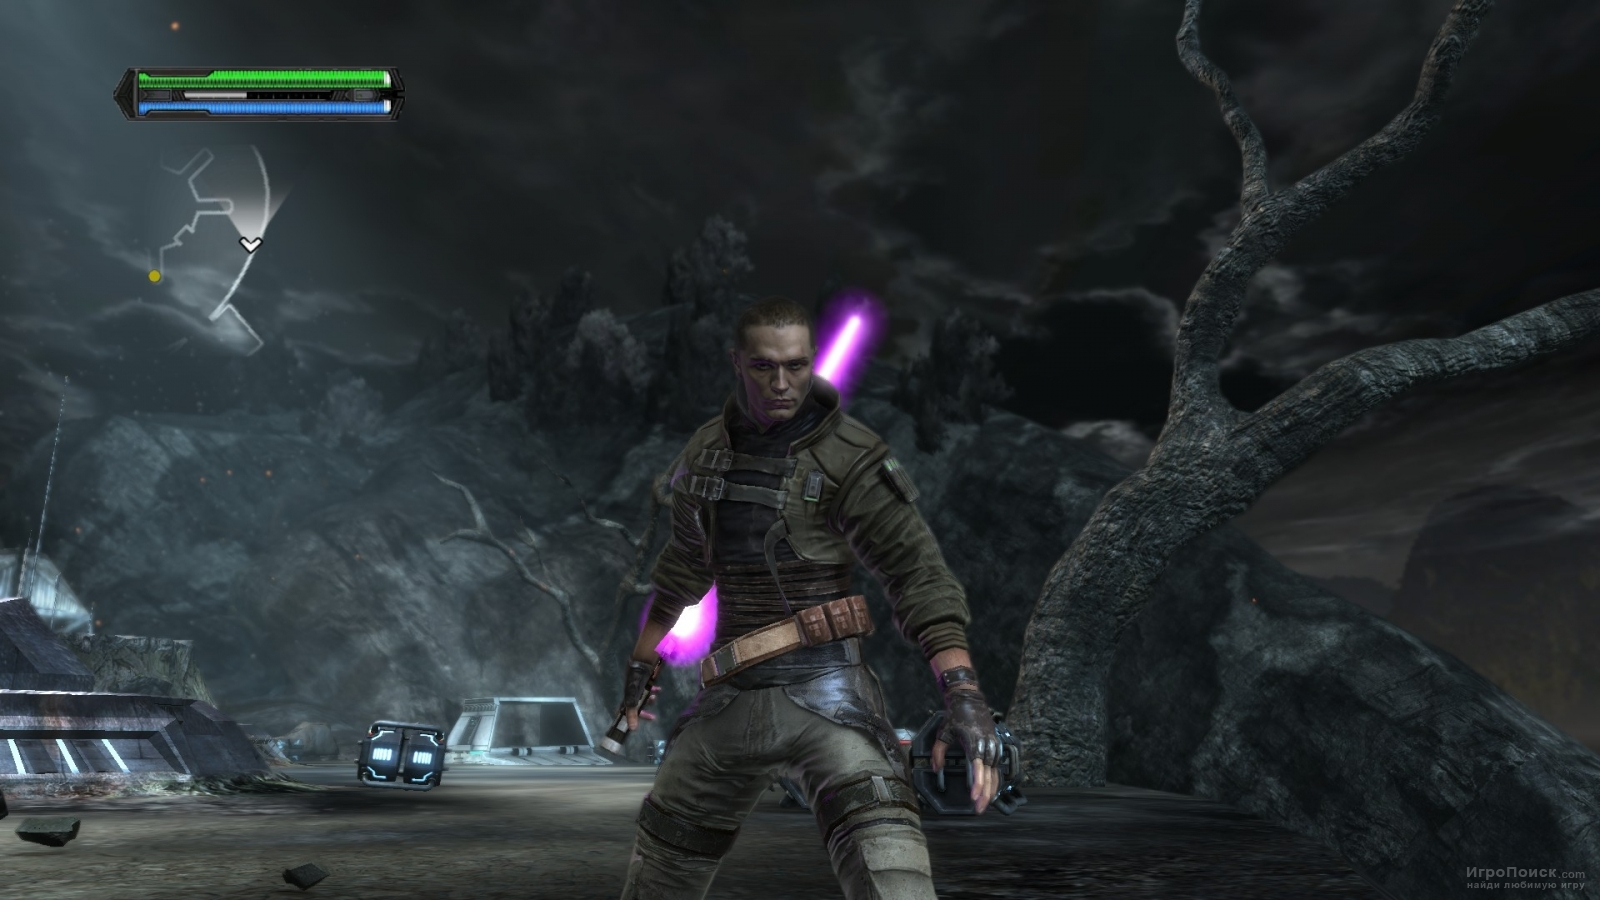 Скриншот к игре Star Wars: The Force Unleashed - Ultimate Sith Edition